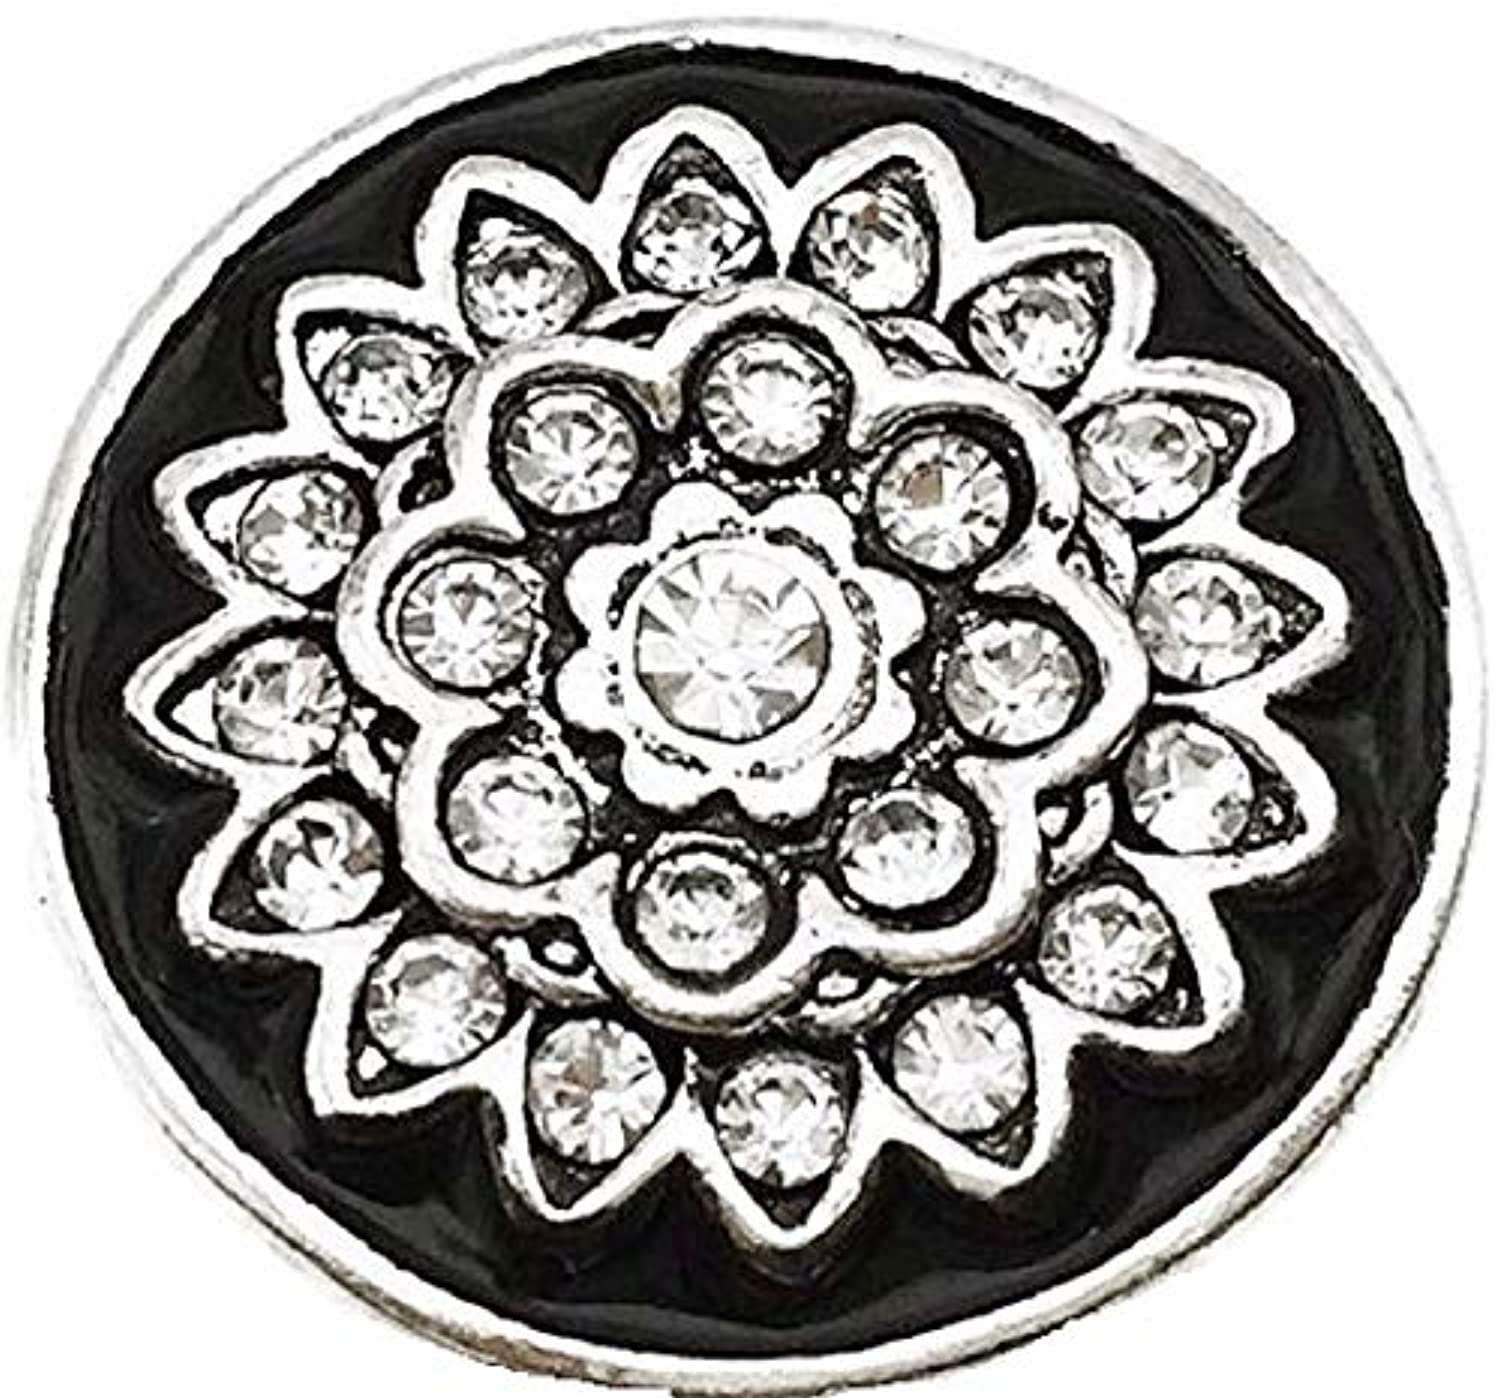 Pizazz Studios Black and White Rhinestone Snap Charm 18mm